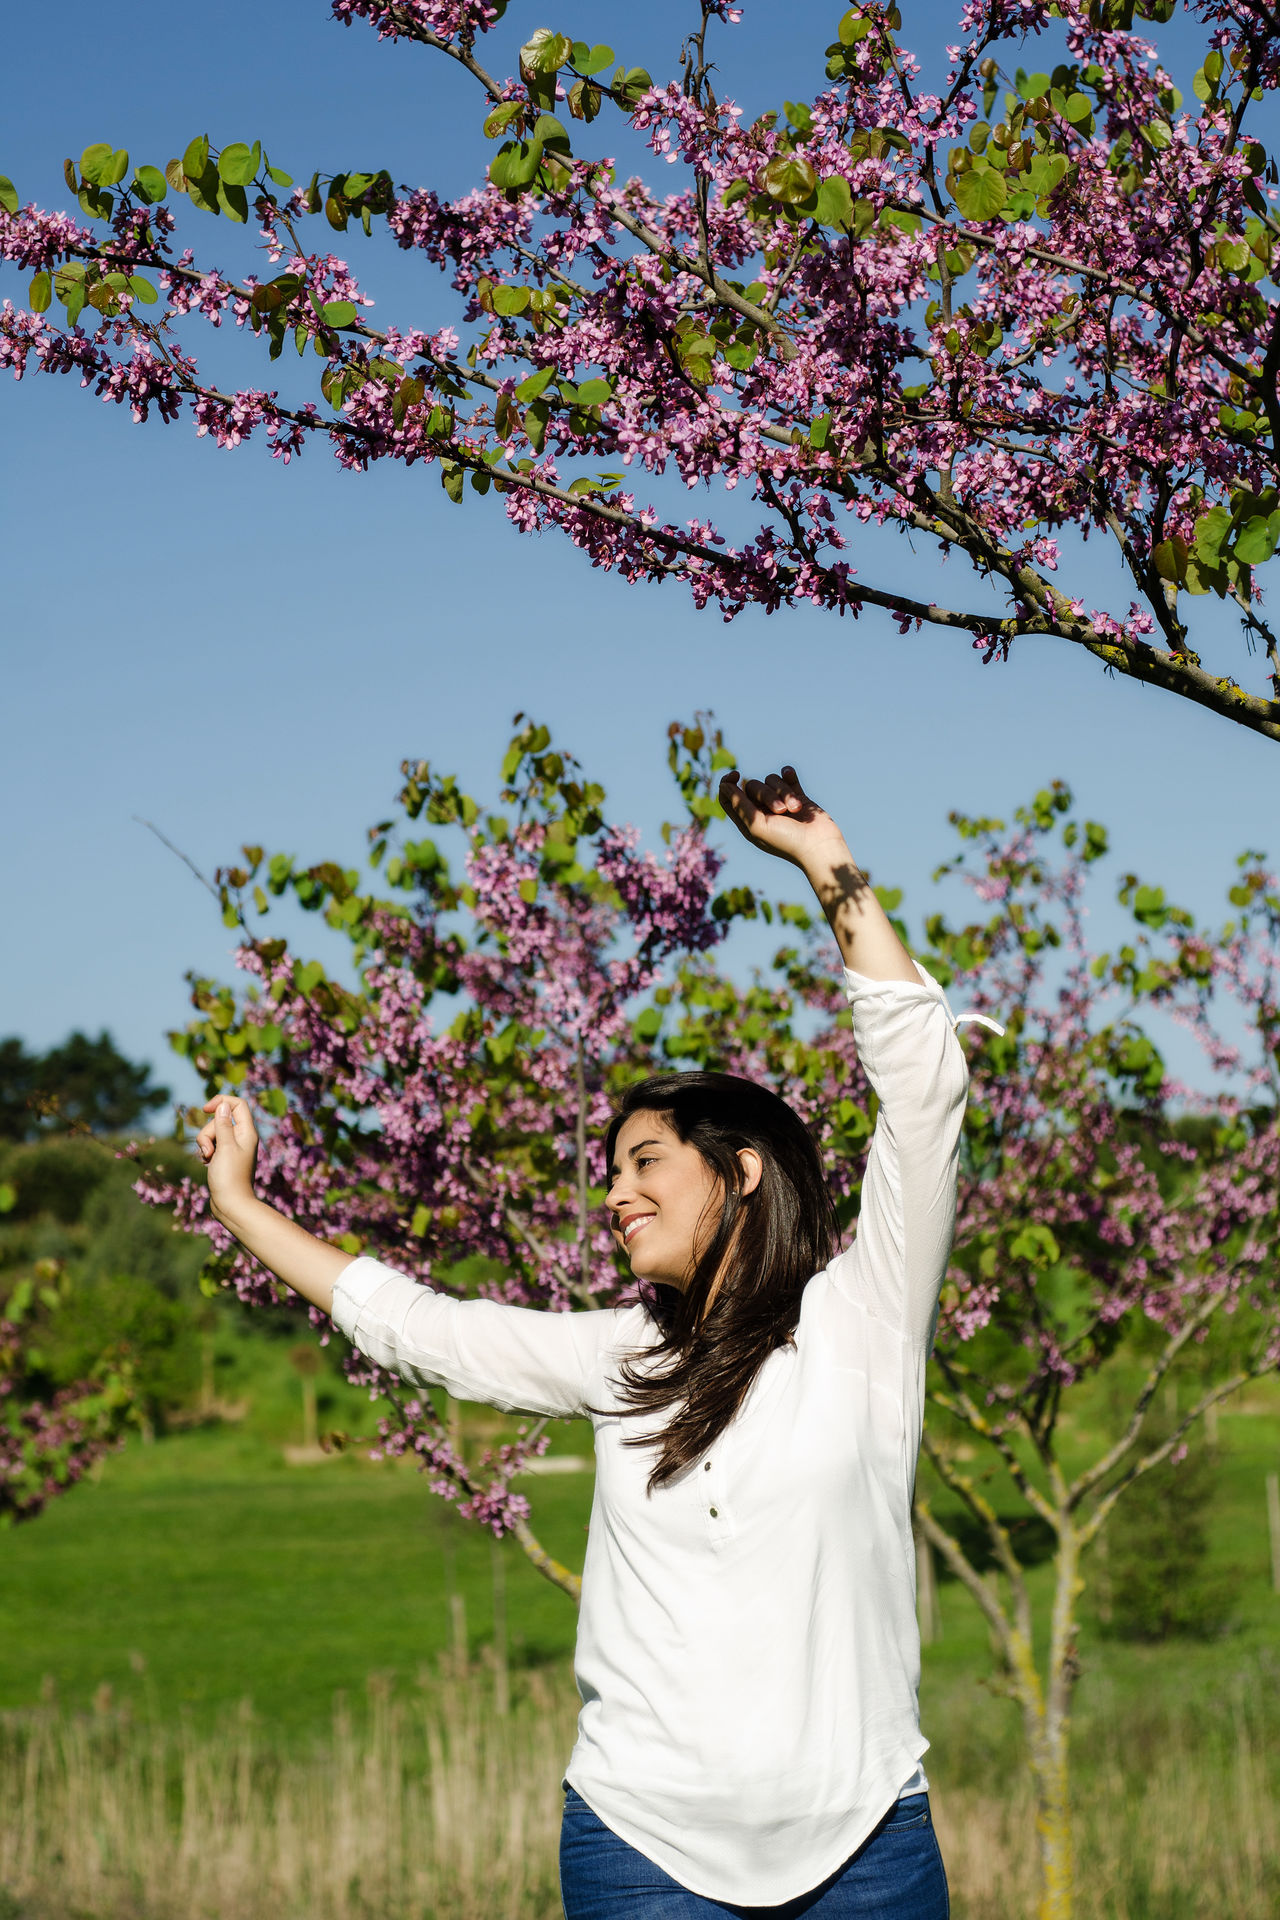 Woman happy with live, enjoy´s the spring the city park Beauty In Nature Blossom Branch Casual Clothing Day Flower Fragility Freshness Growth Leisure Activity Lifestyles Nature One Person Outdoors Plant Real People Sky Springtime Tree Women Young Adult Young Women